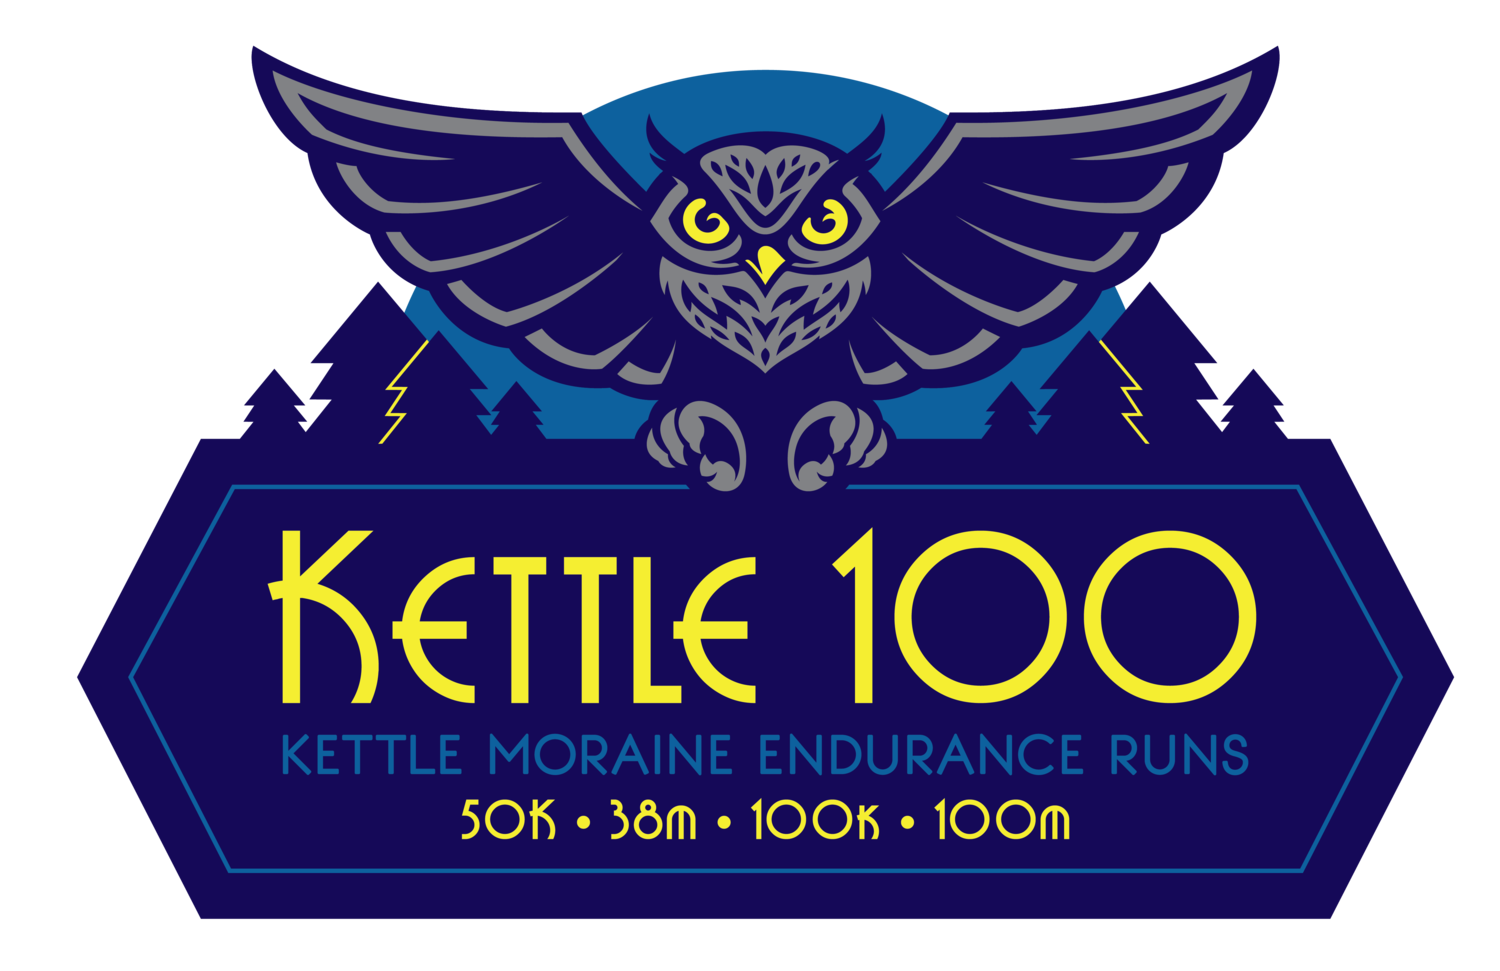 Kettle Moraine 100 Endurance Races